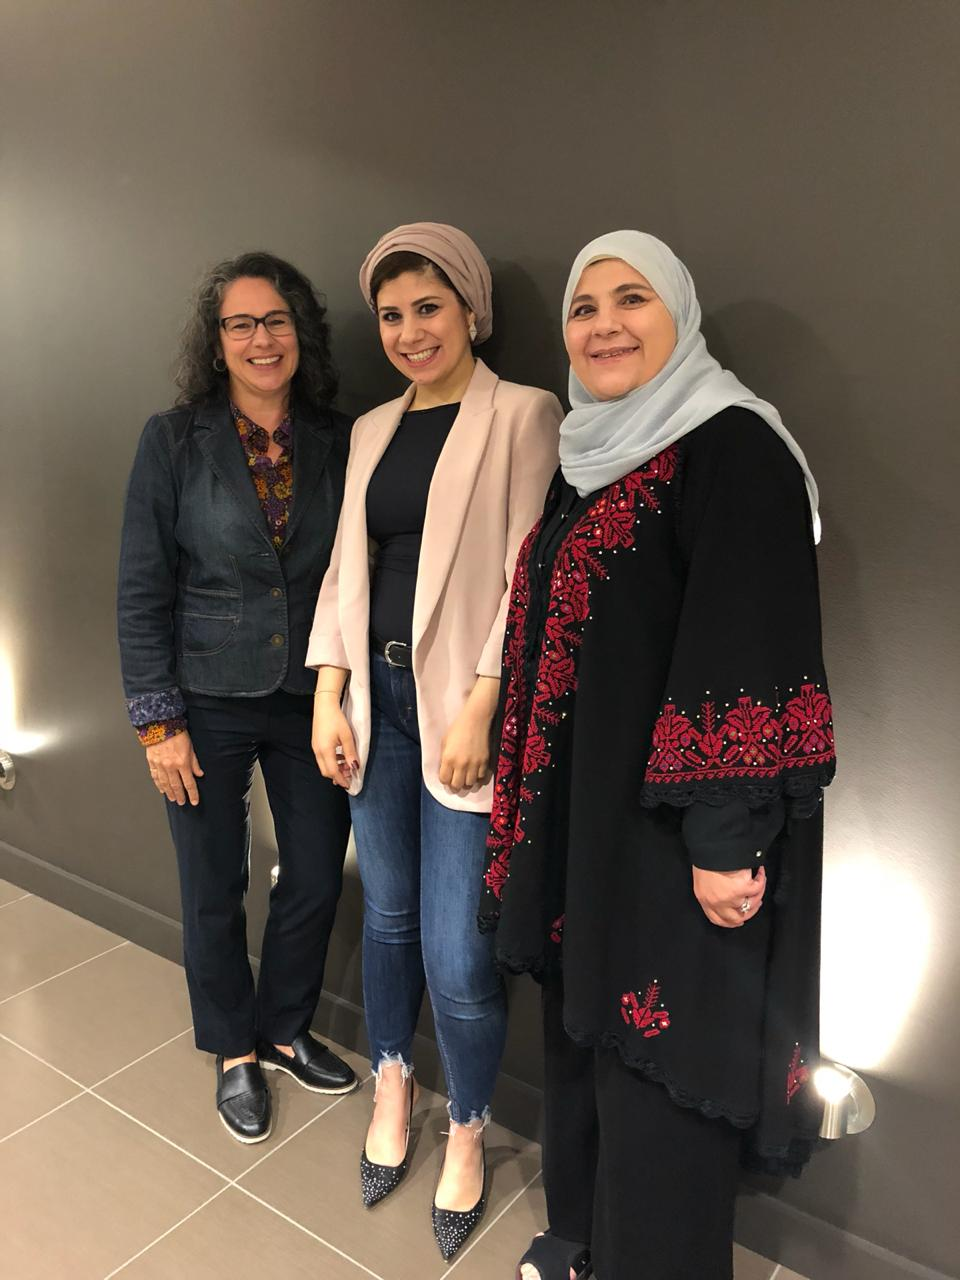 Sarah Awwad poses with mother and supervisor